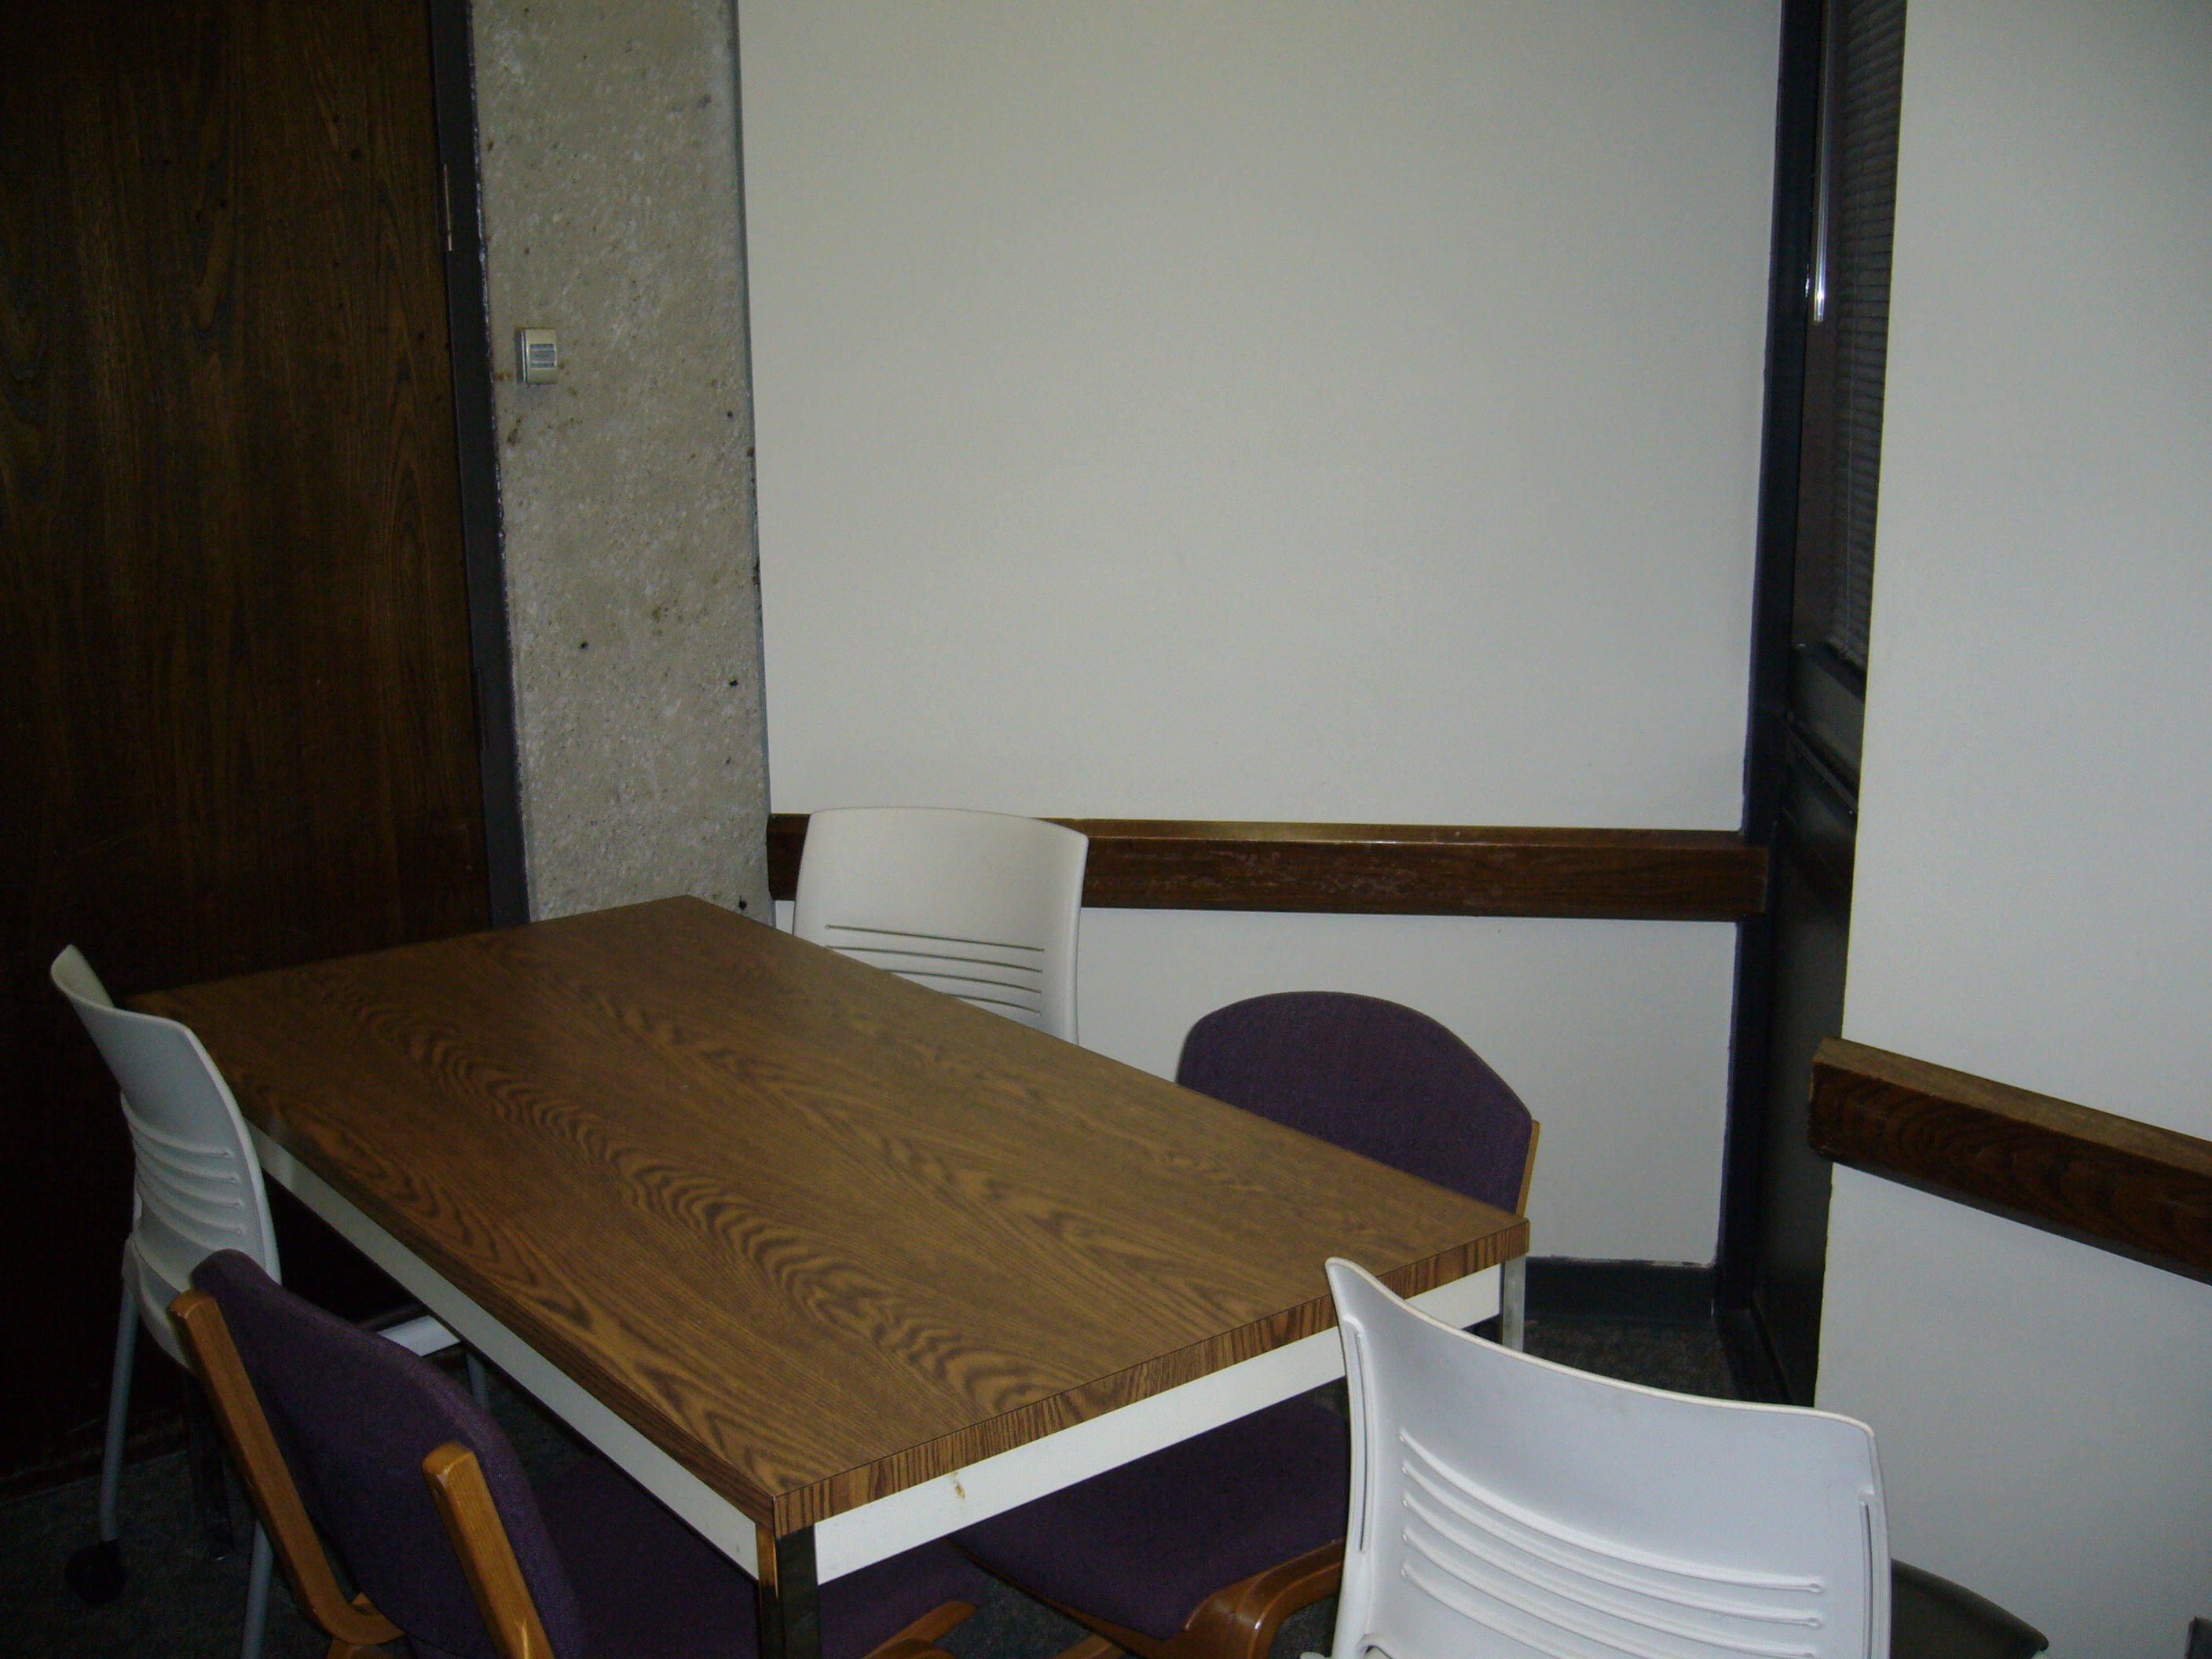 Bierce Library Room 78A